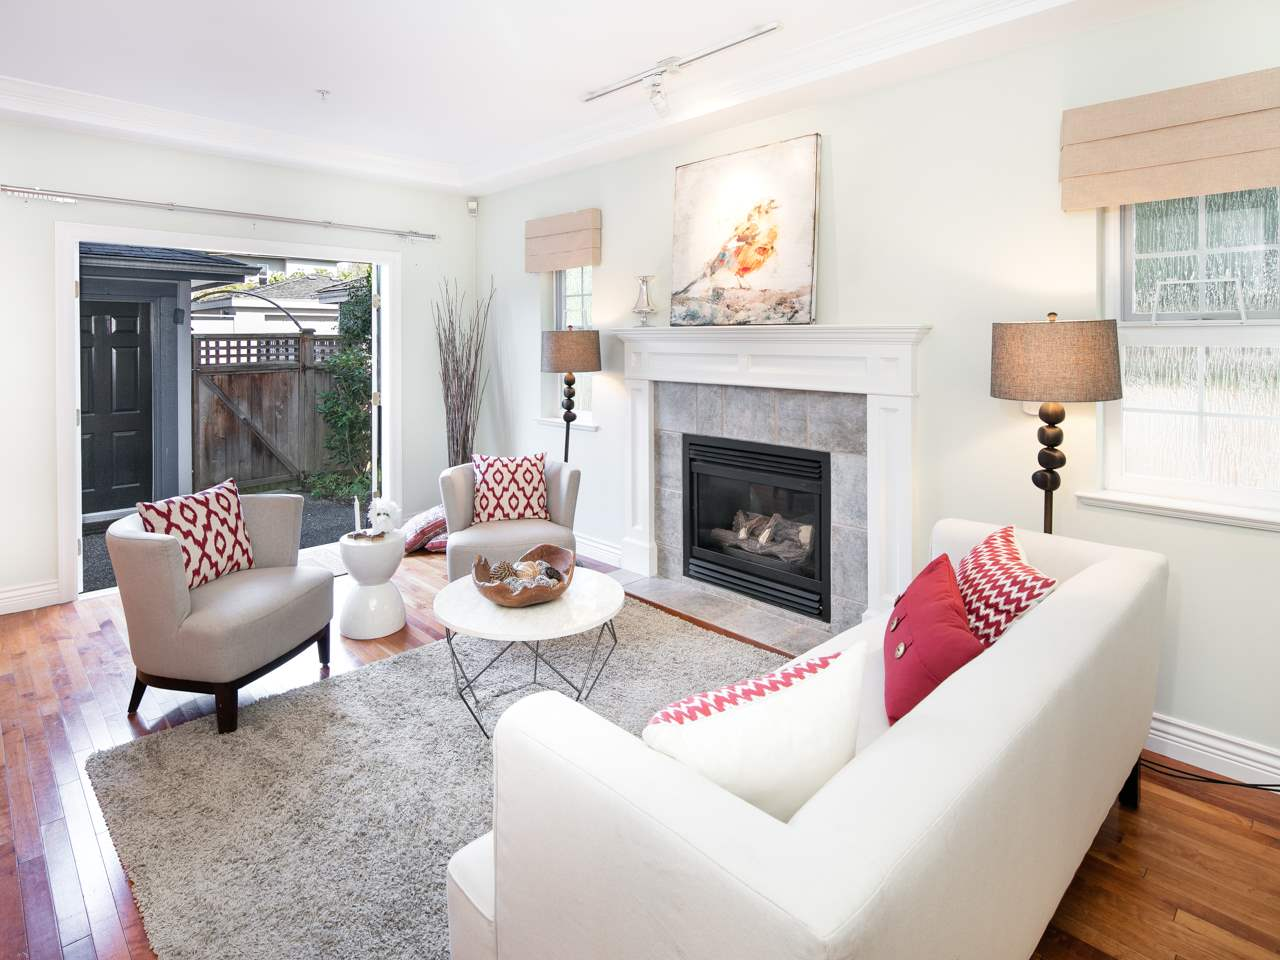 Main Photo: 1819 CREELMAN Avenue in Vancouver: Kitsilano House 1/2 Duplex for sale (Vancouver West)  : MLS(r) # R2120569